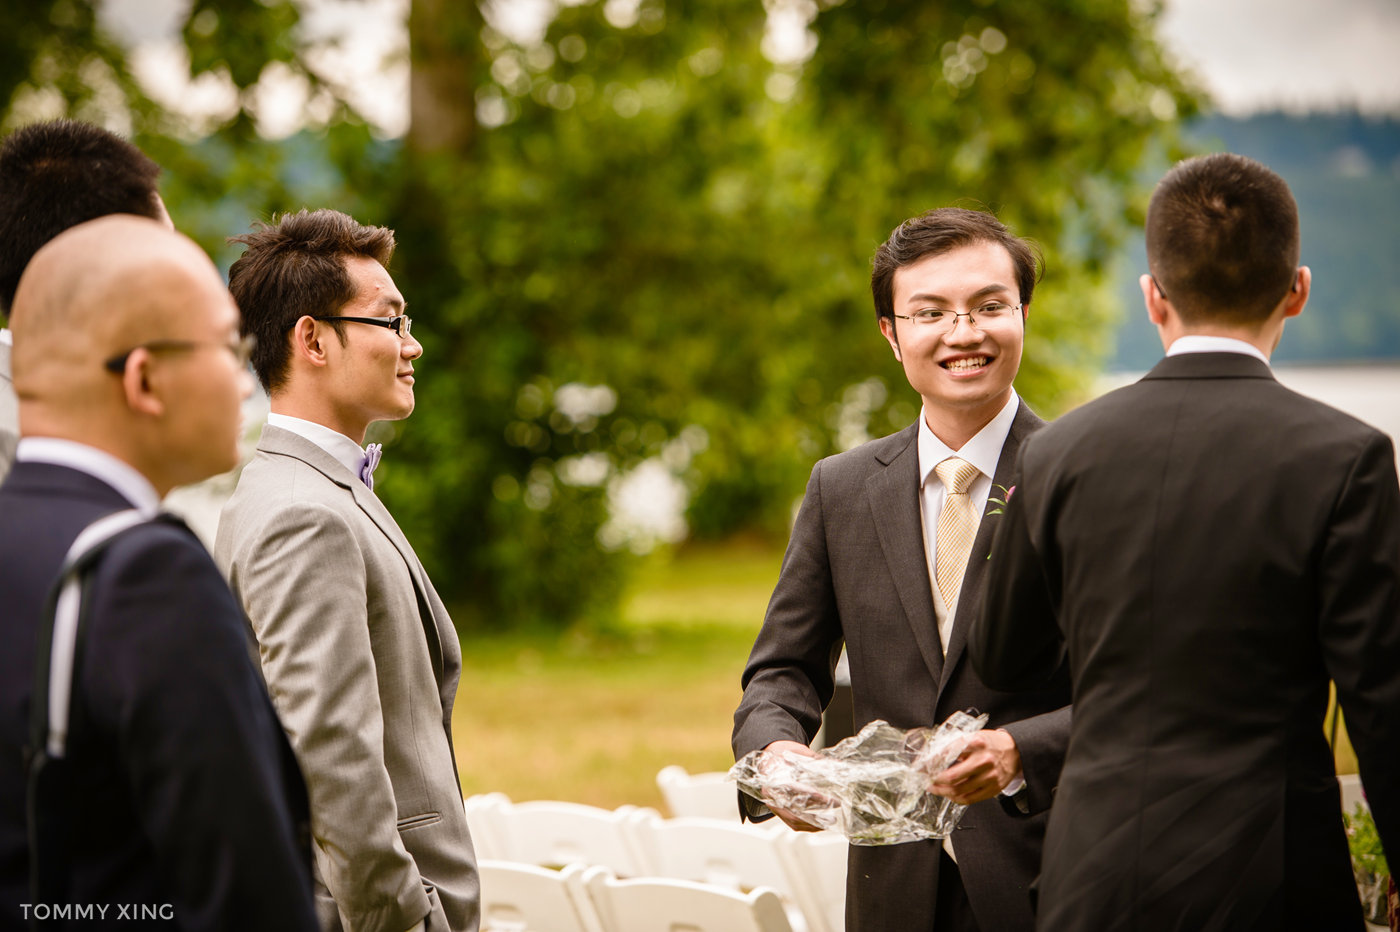 Seattle Wedding and pre wedding Los Angeles Tommy Xing Photography 西雅图洛杉矶旧金山婚礼婚纱照摄影师 045.jpg